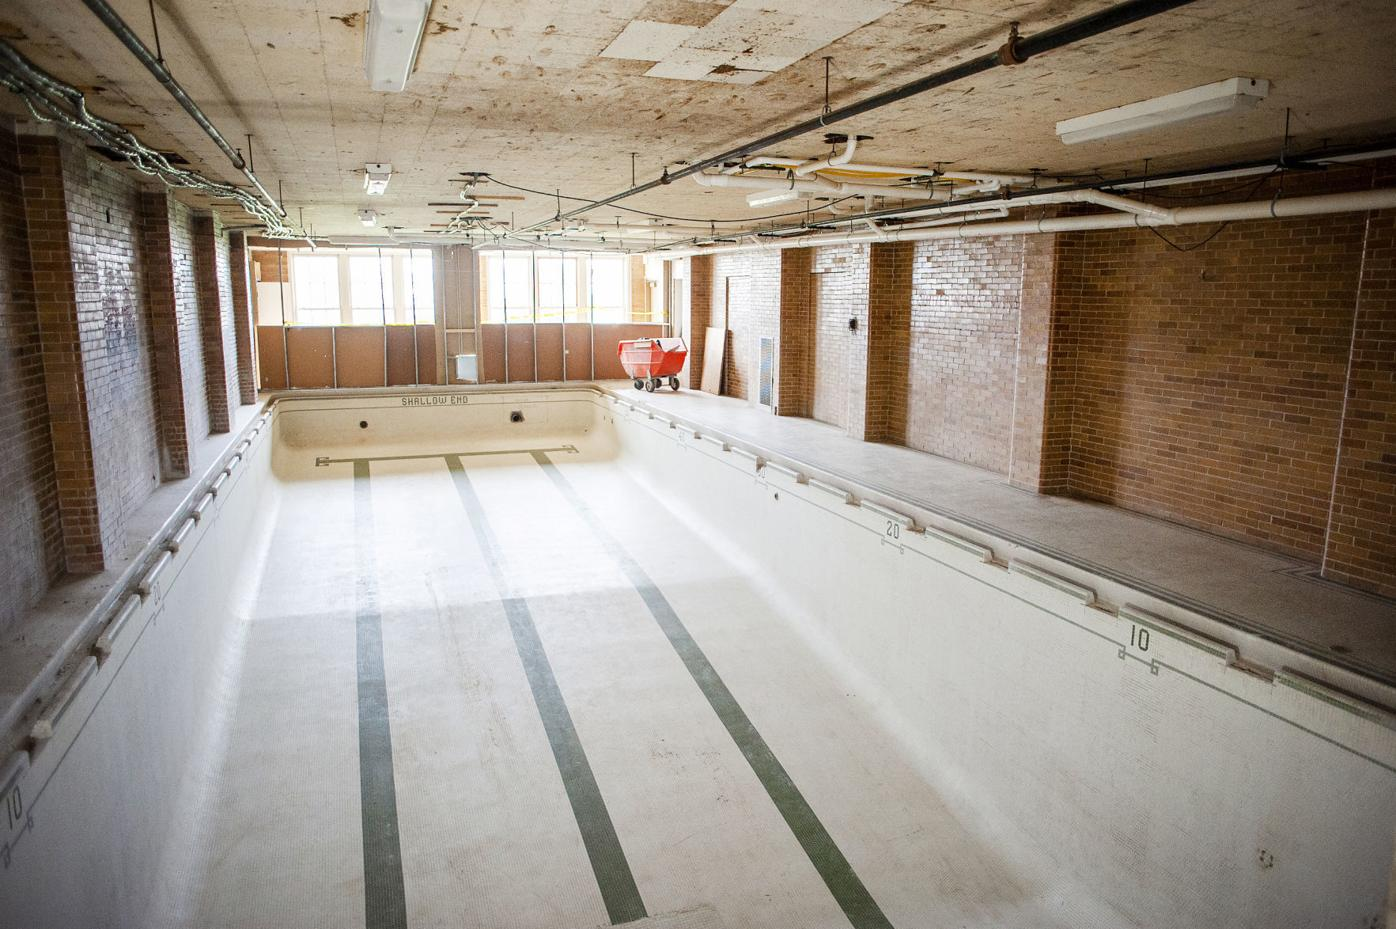 Marshall junior high school janesville wi nude swimming This Time Fully Clothed Former Marshall Middle School Pool Will Have New Use Local News Gazettextra Com